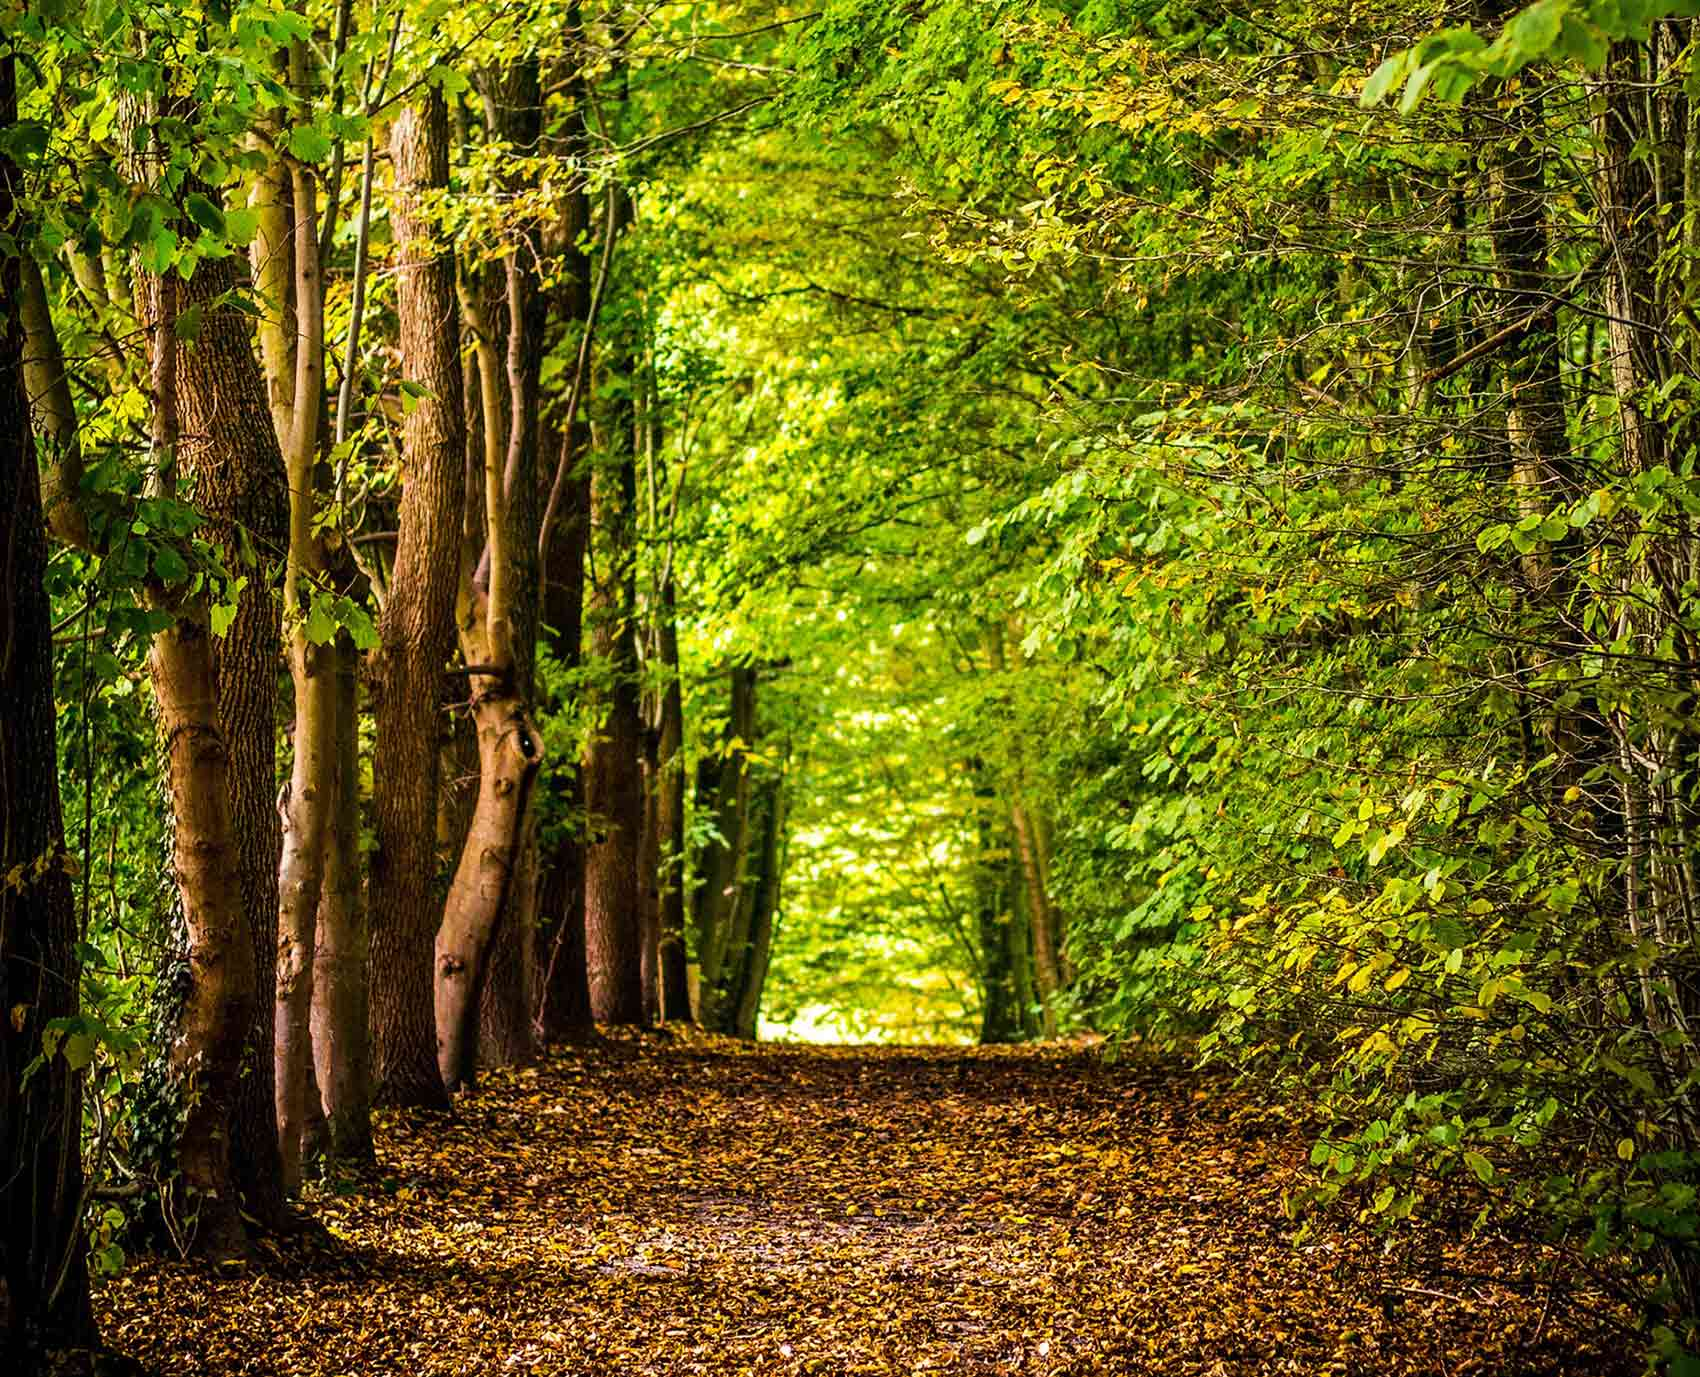 woods pathway with green leaves and trees